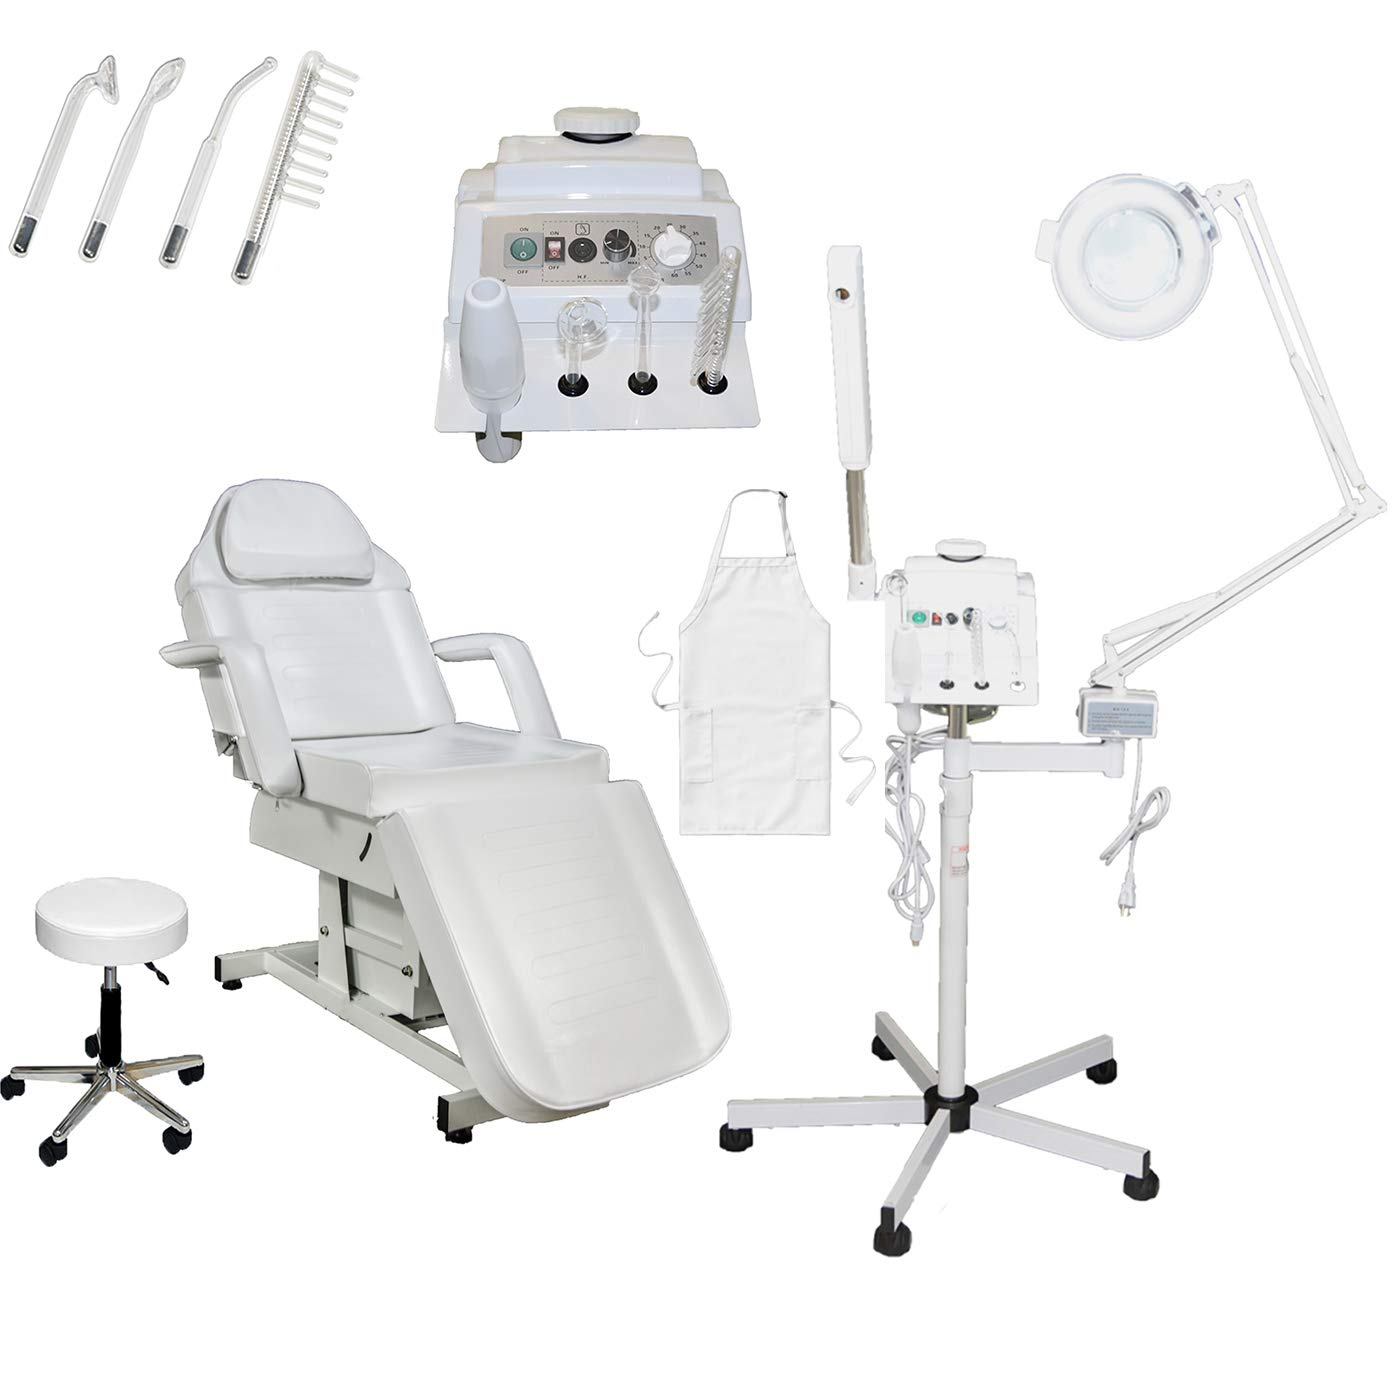 Salon Spa Package 3 in 1 Herbal Aromatherapy Facial Steamer, 5x (16 Diopter) Magnifying Lamp, Professional High Frequency Machine Electrical Facial Bed with Technician Stool